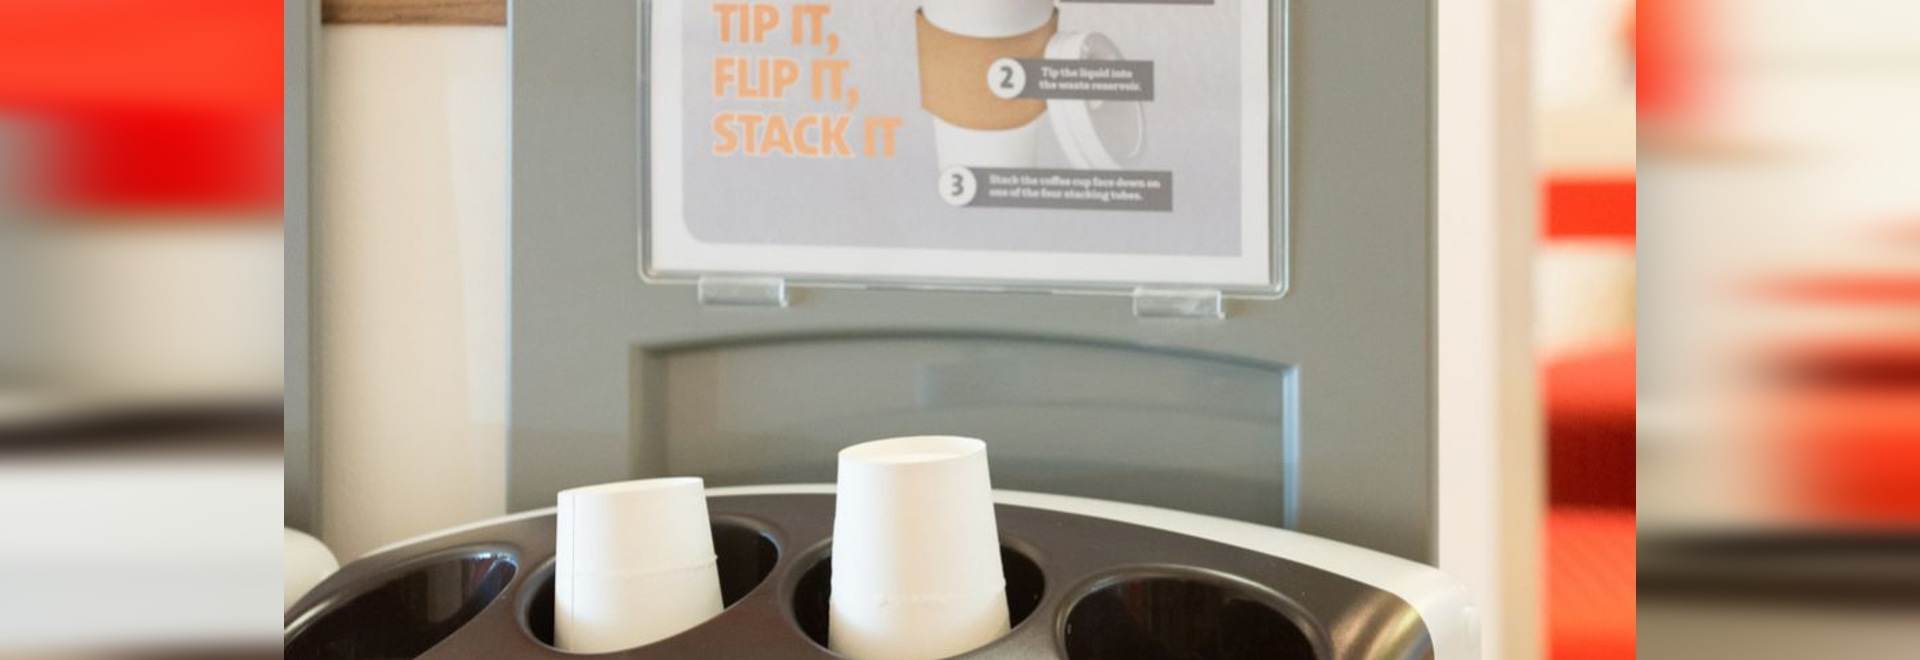 Veolia to Recycle 120m Coffee Cups in the UK Next Year